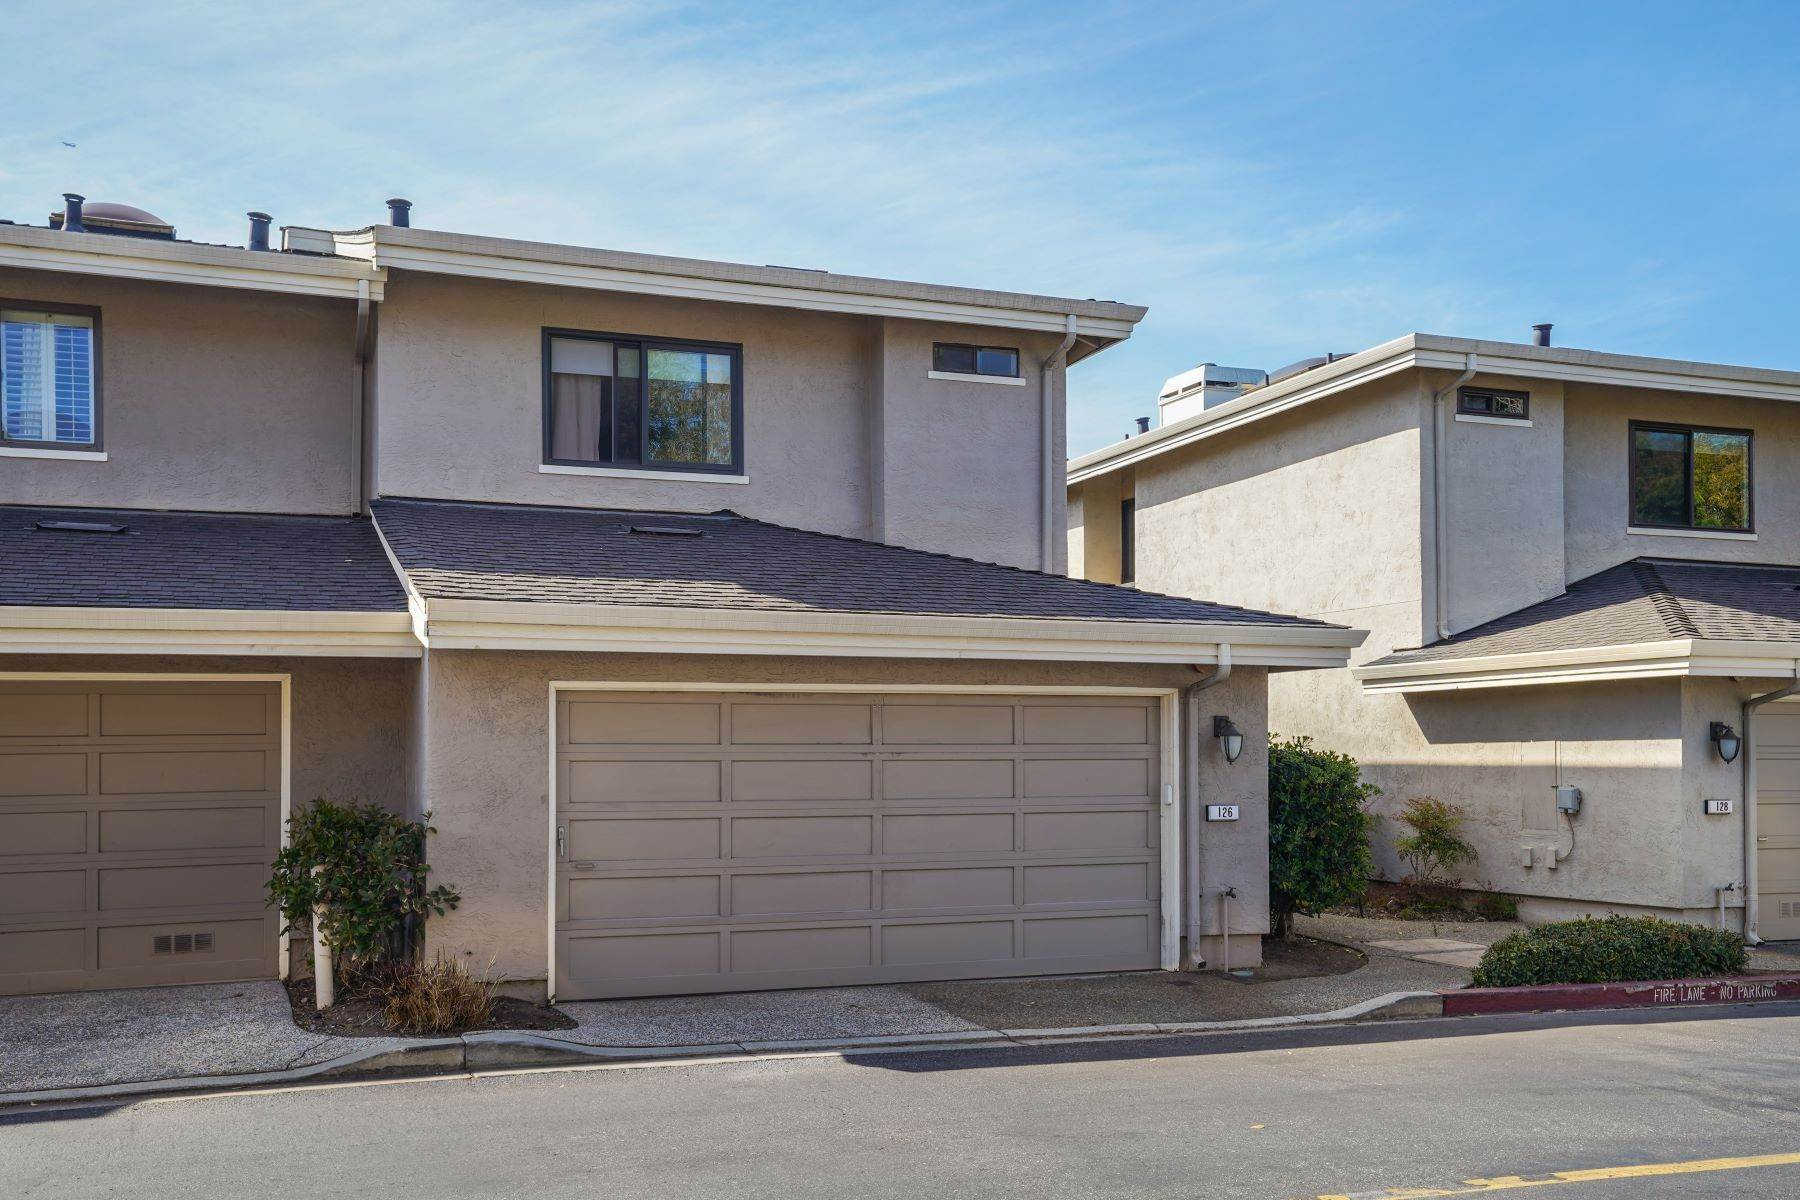 29. townhouses for Sale at Contemporary Townhome with Excellent Mid-Peninsula Location 126 Albacore Lane Foster City, California 94404 United States